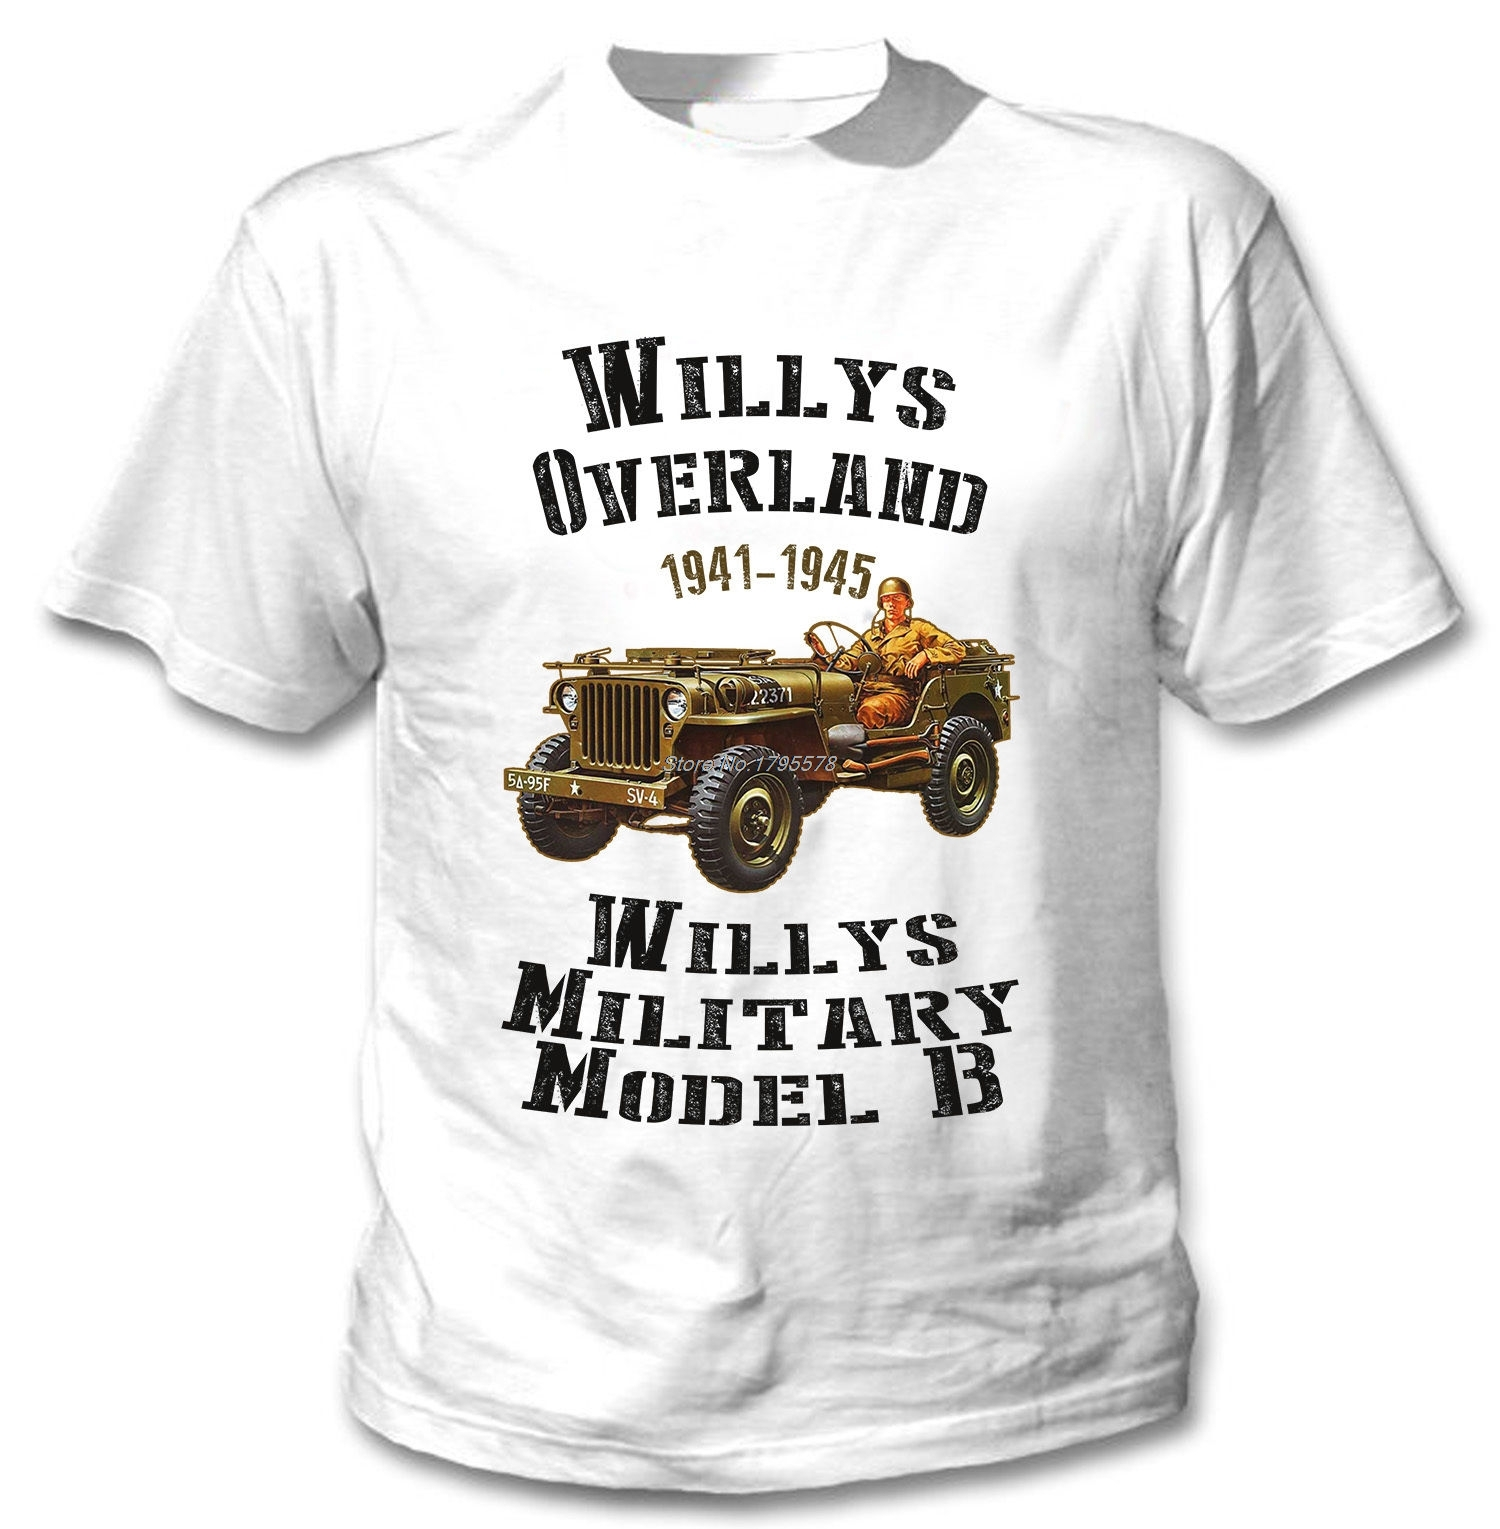 New Fashion Funny T Shirt Willy Usa Wwii Men Cotton Short 1941 Dodge Tow Truck If You Are Not Sure About Your Size Please Contact Us For The Suggestions